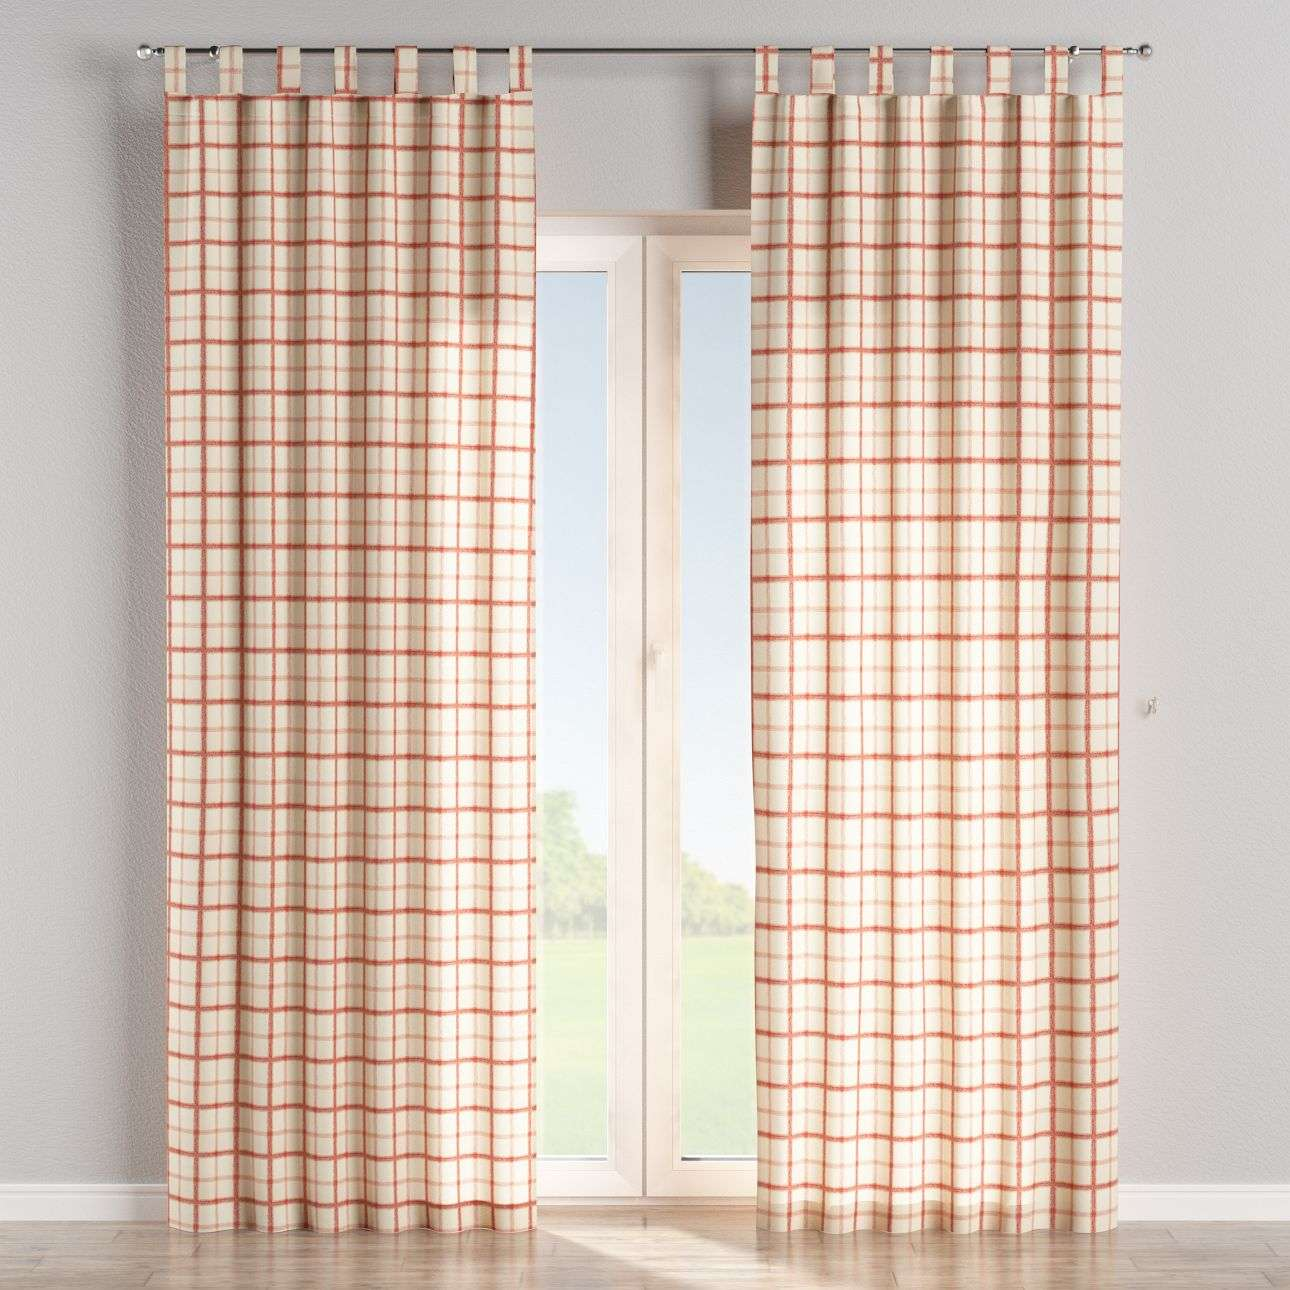 Tab top curtains 130 × 260 cm (51 × 102 inch) in collection Avinon, fabric: 131-15